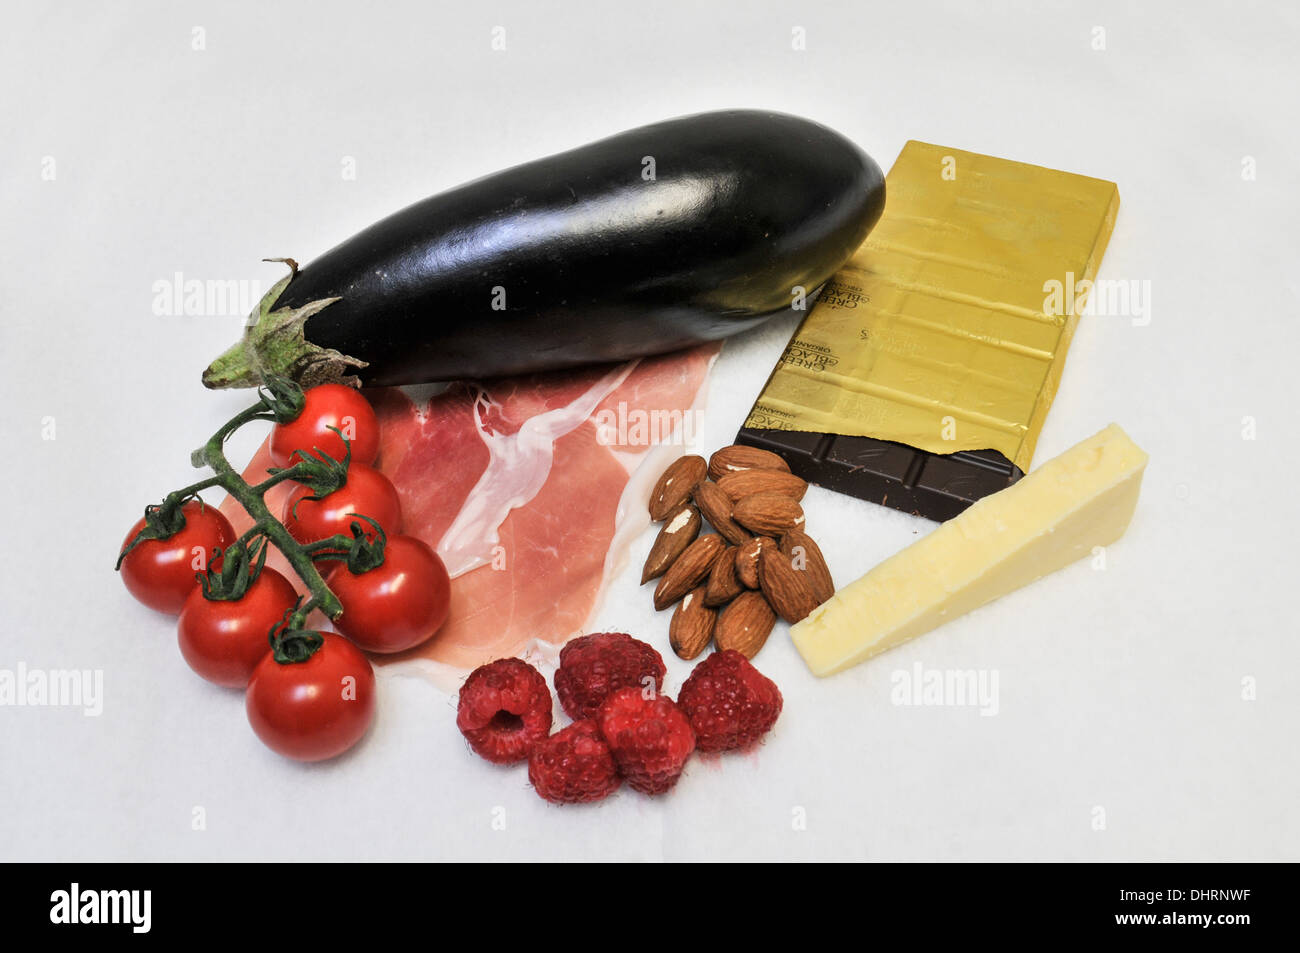 Medical Food Group - Stock Image